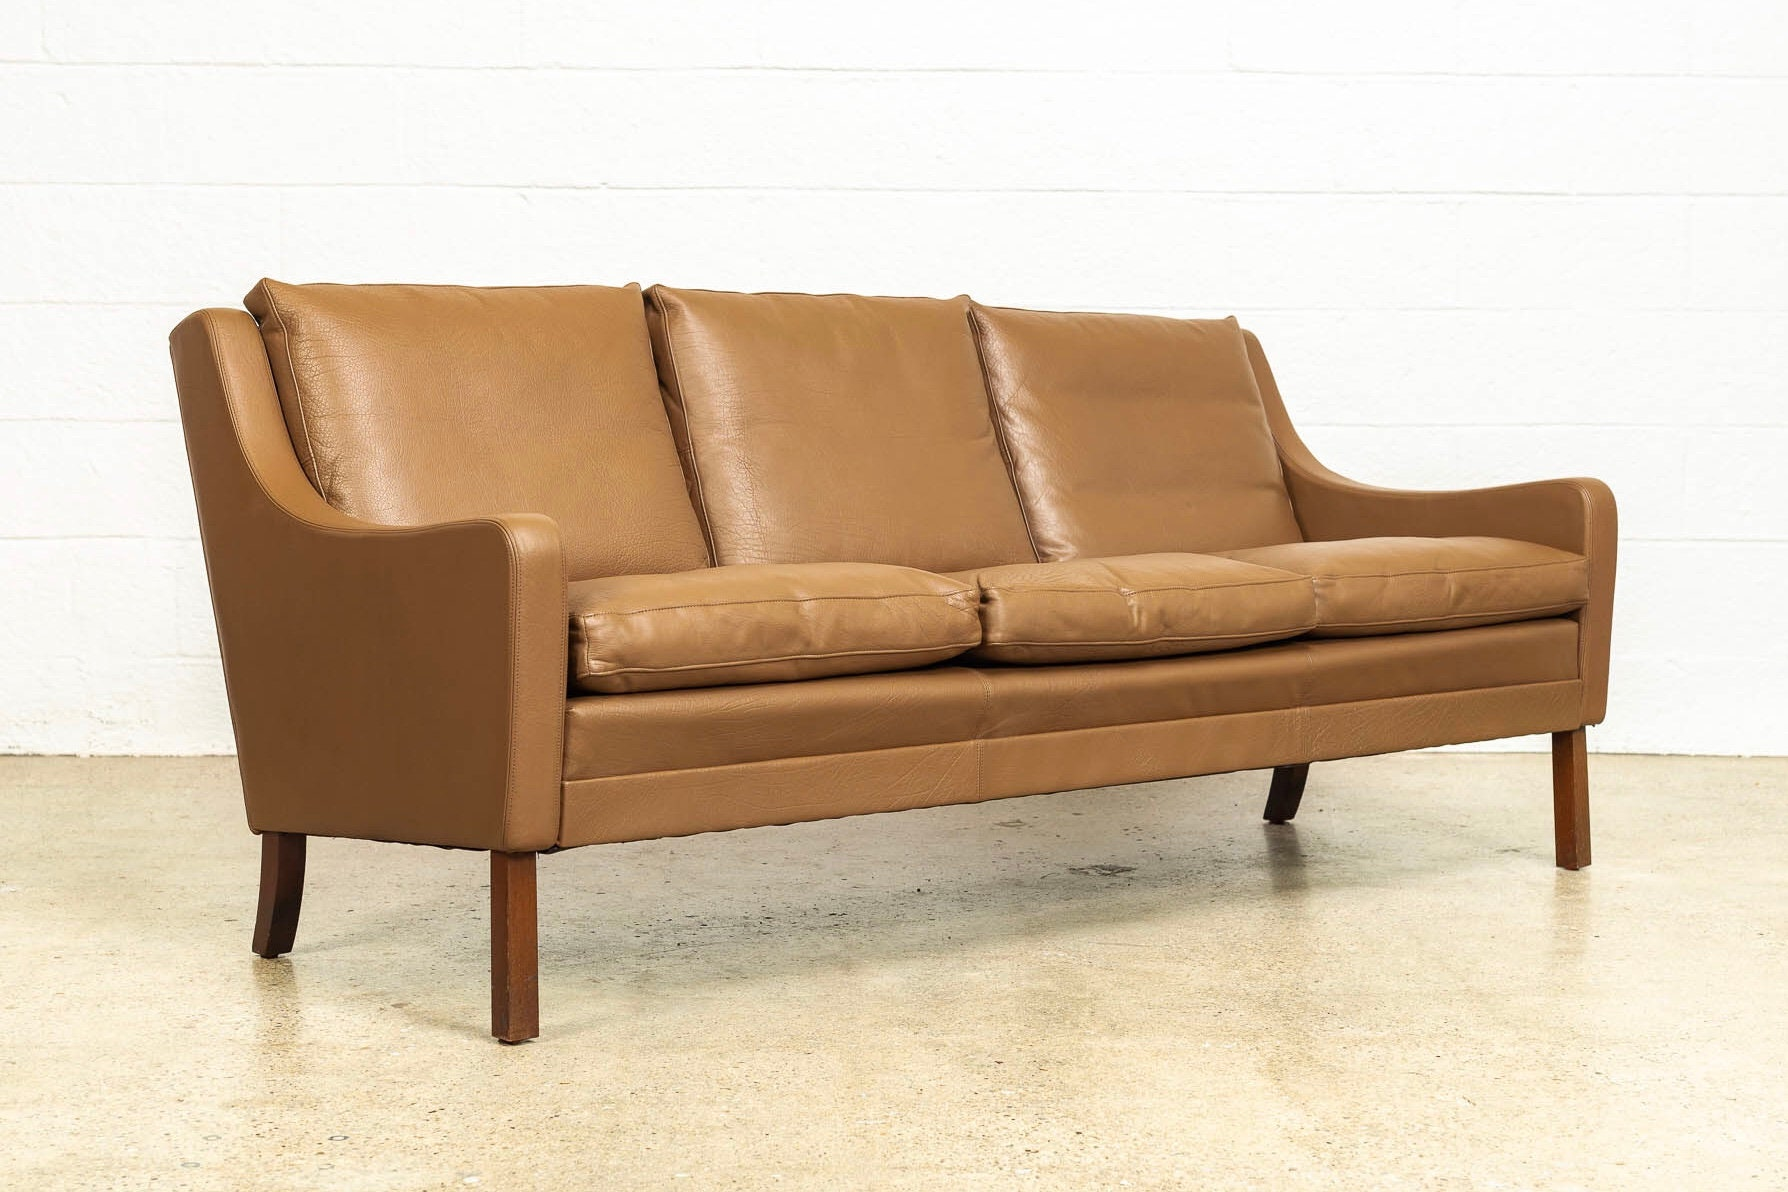 Vintage Mid Century Danish Modern Brown Leather Three Seat Sofa Couch Made In Denmark 1960s